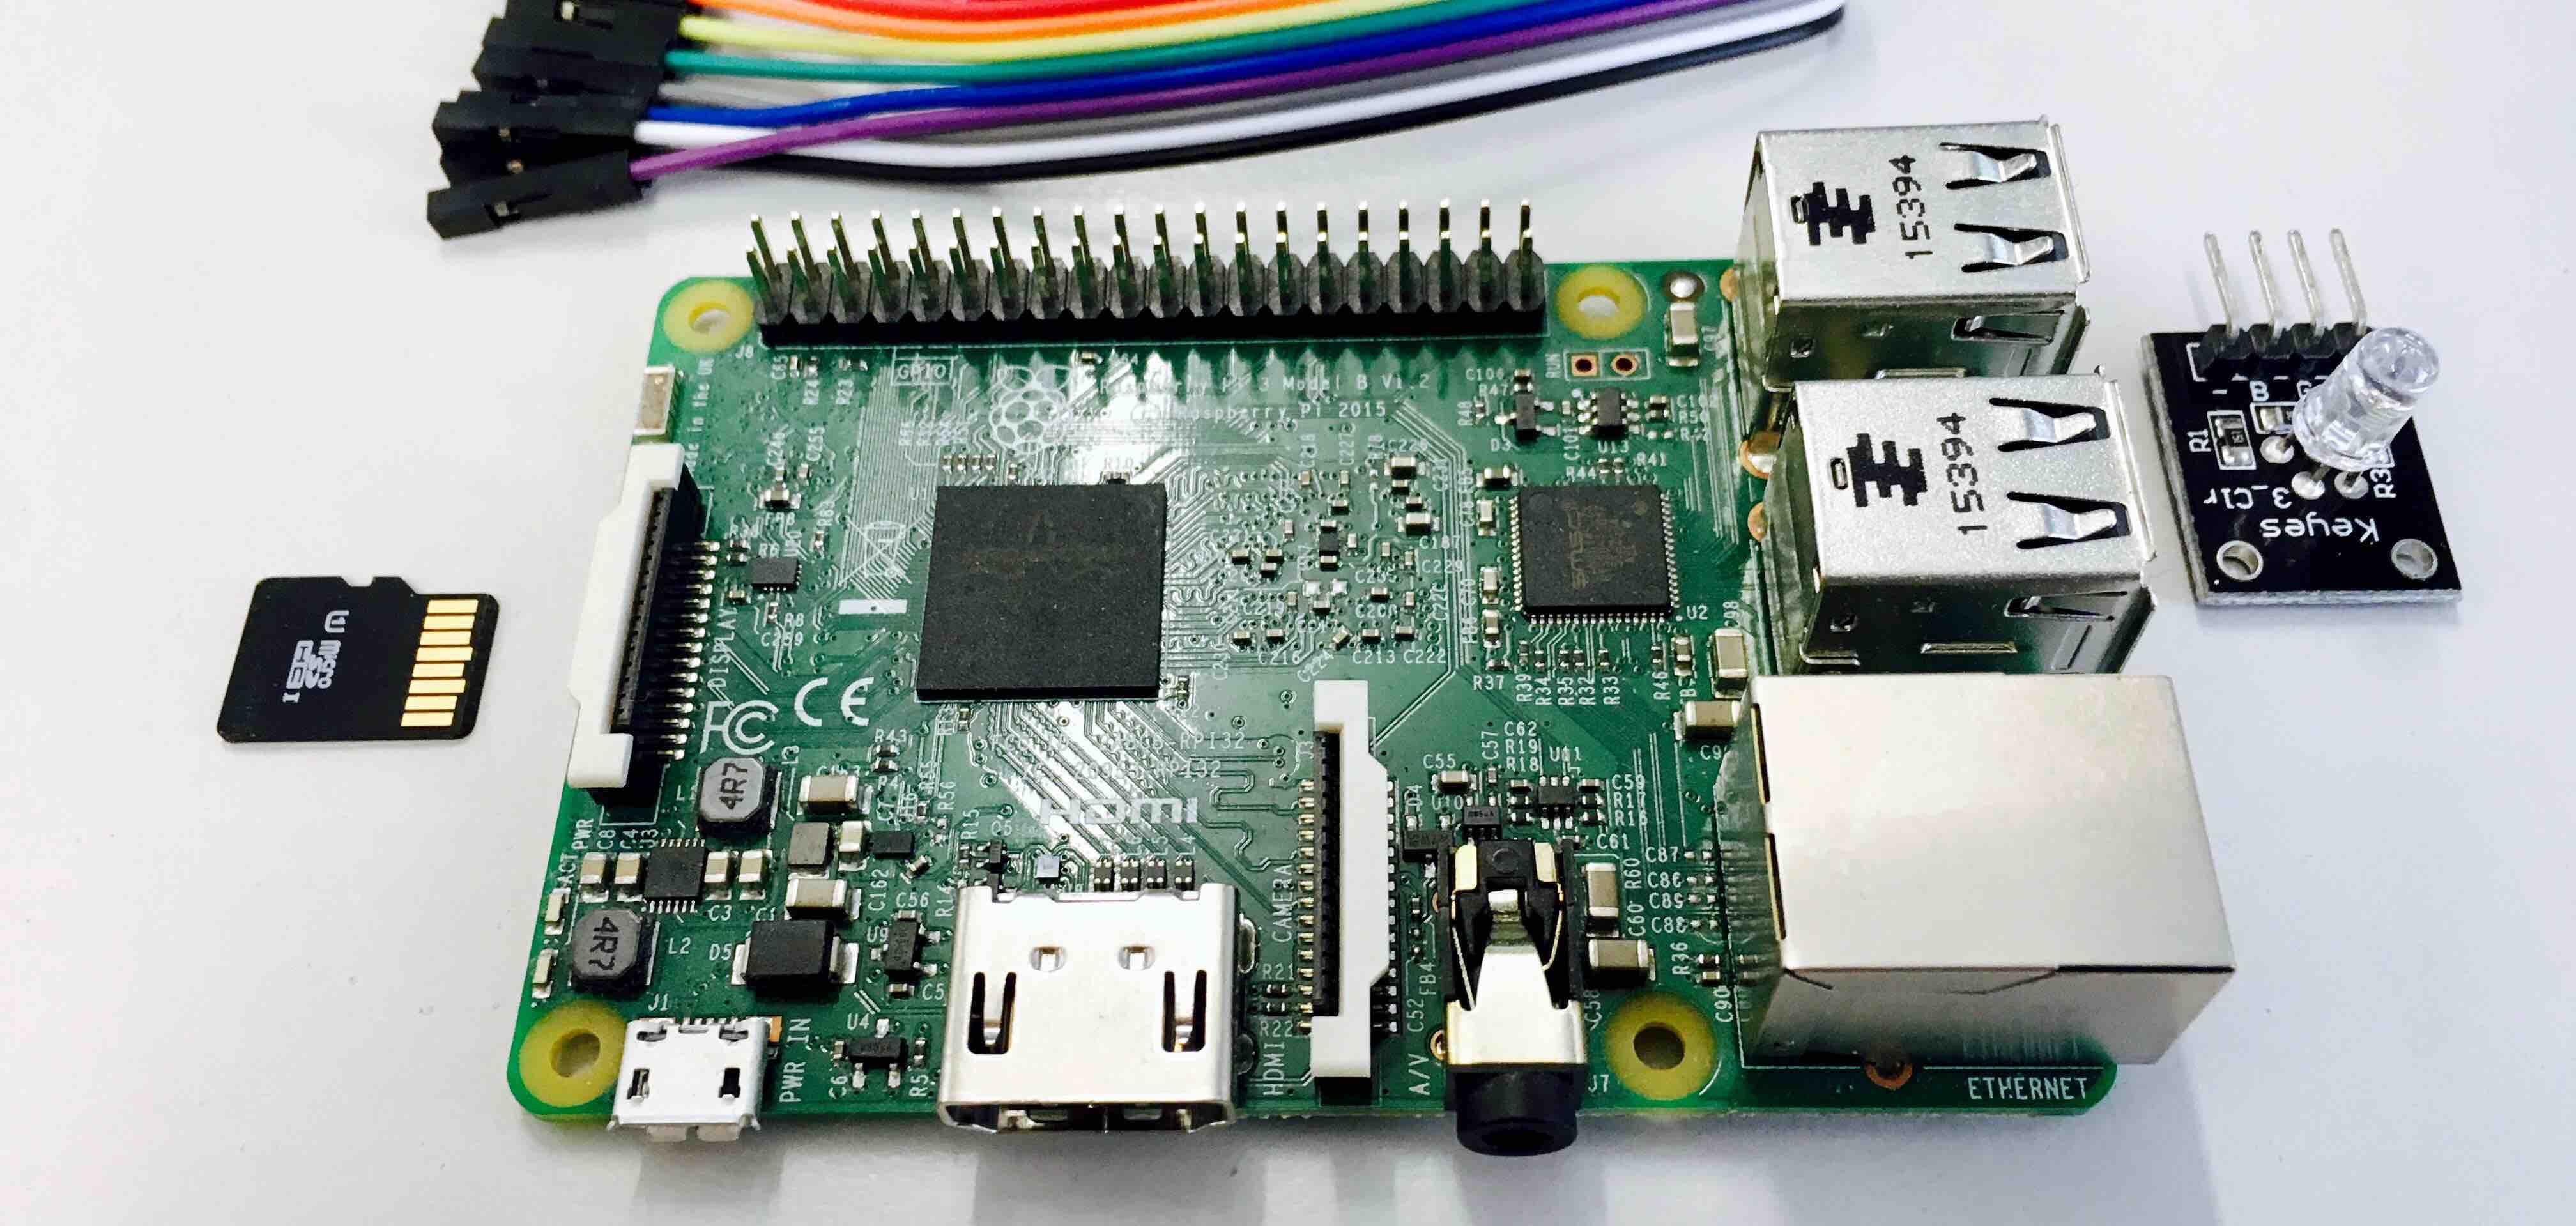 How to program your Raspberry Pi with Statechart Tools in 5 Minutes